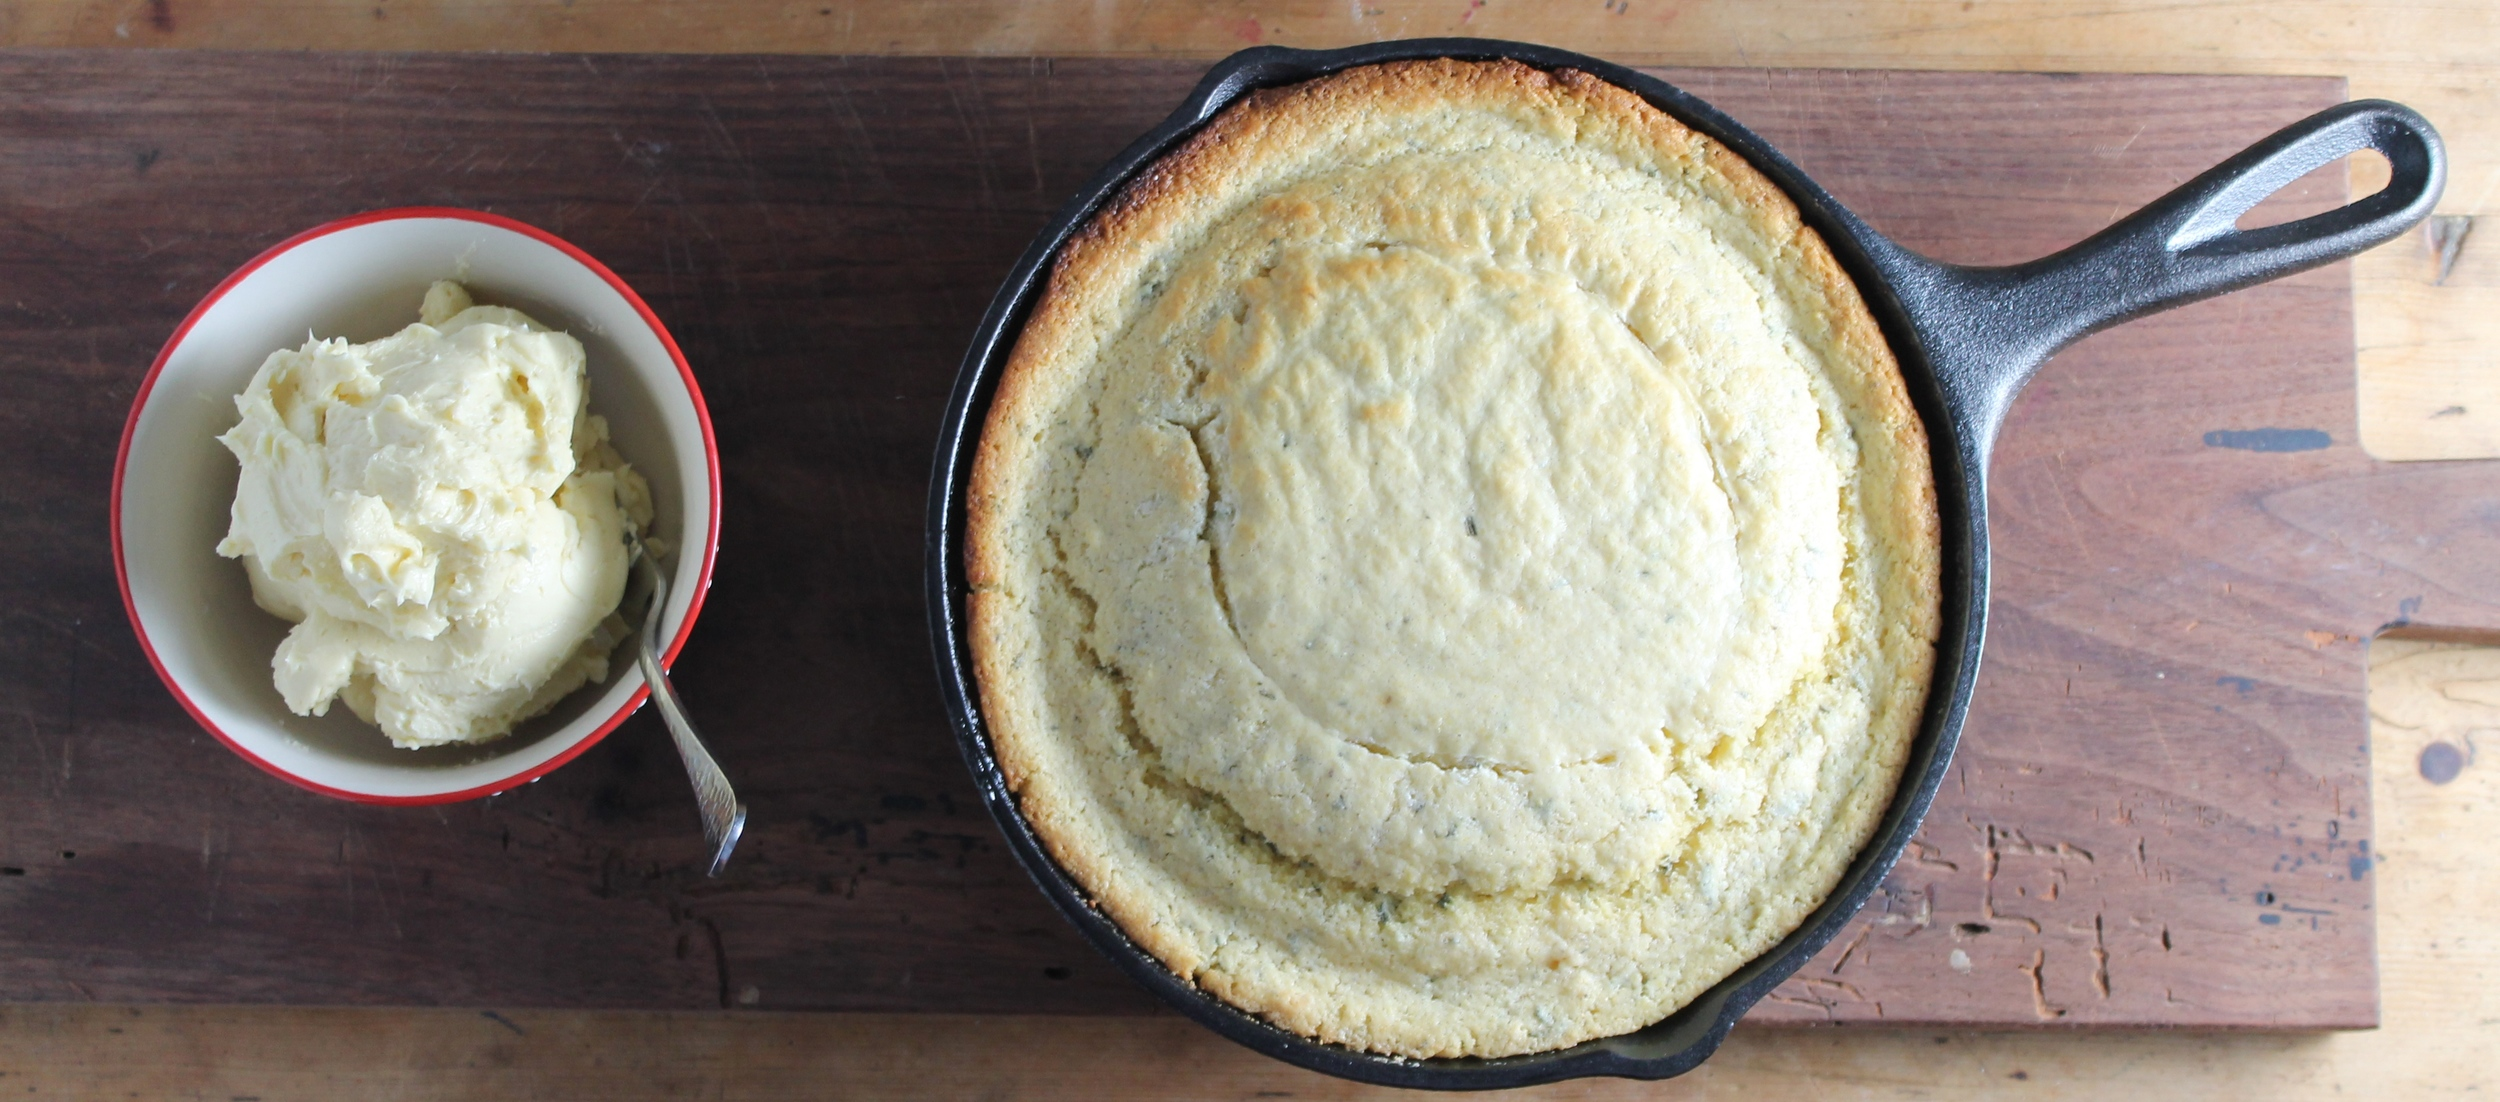 Rosemary Cornbread with Salted Maple Butter | www.hungryinlove.com